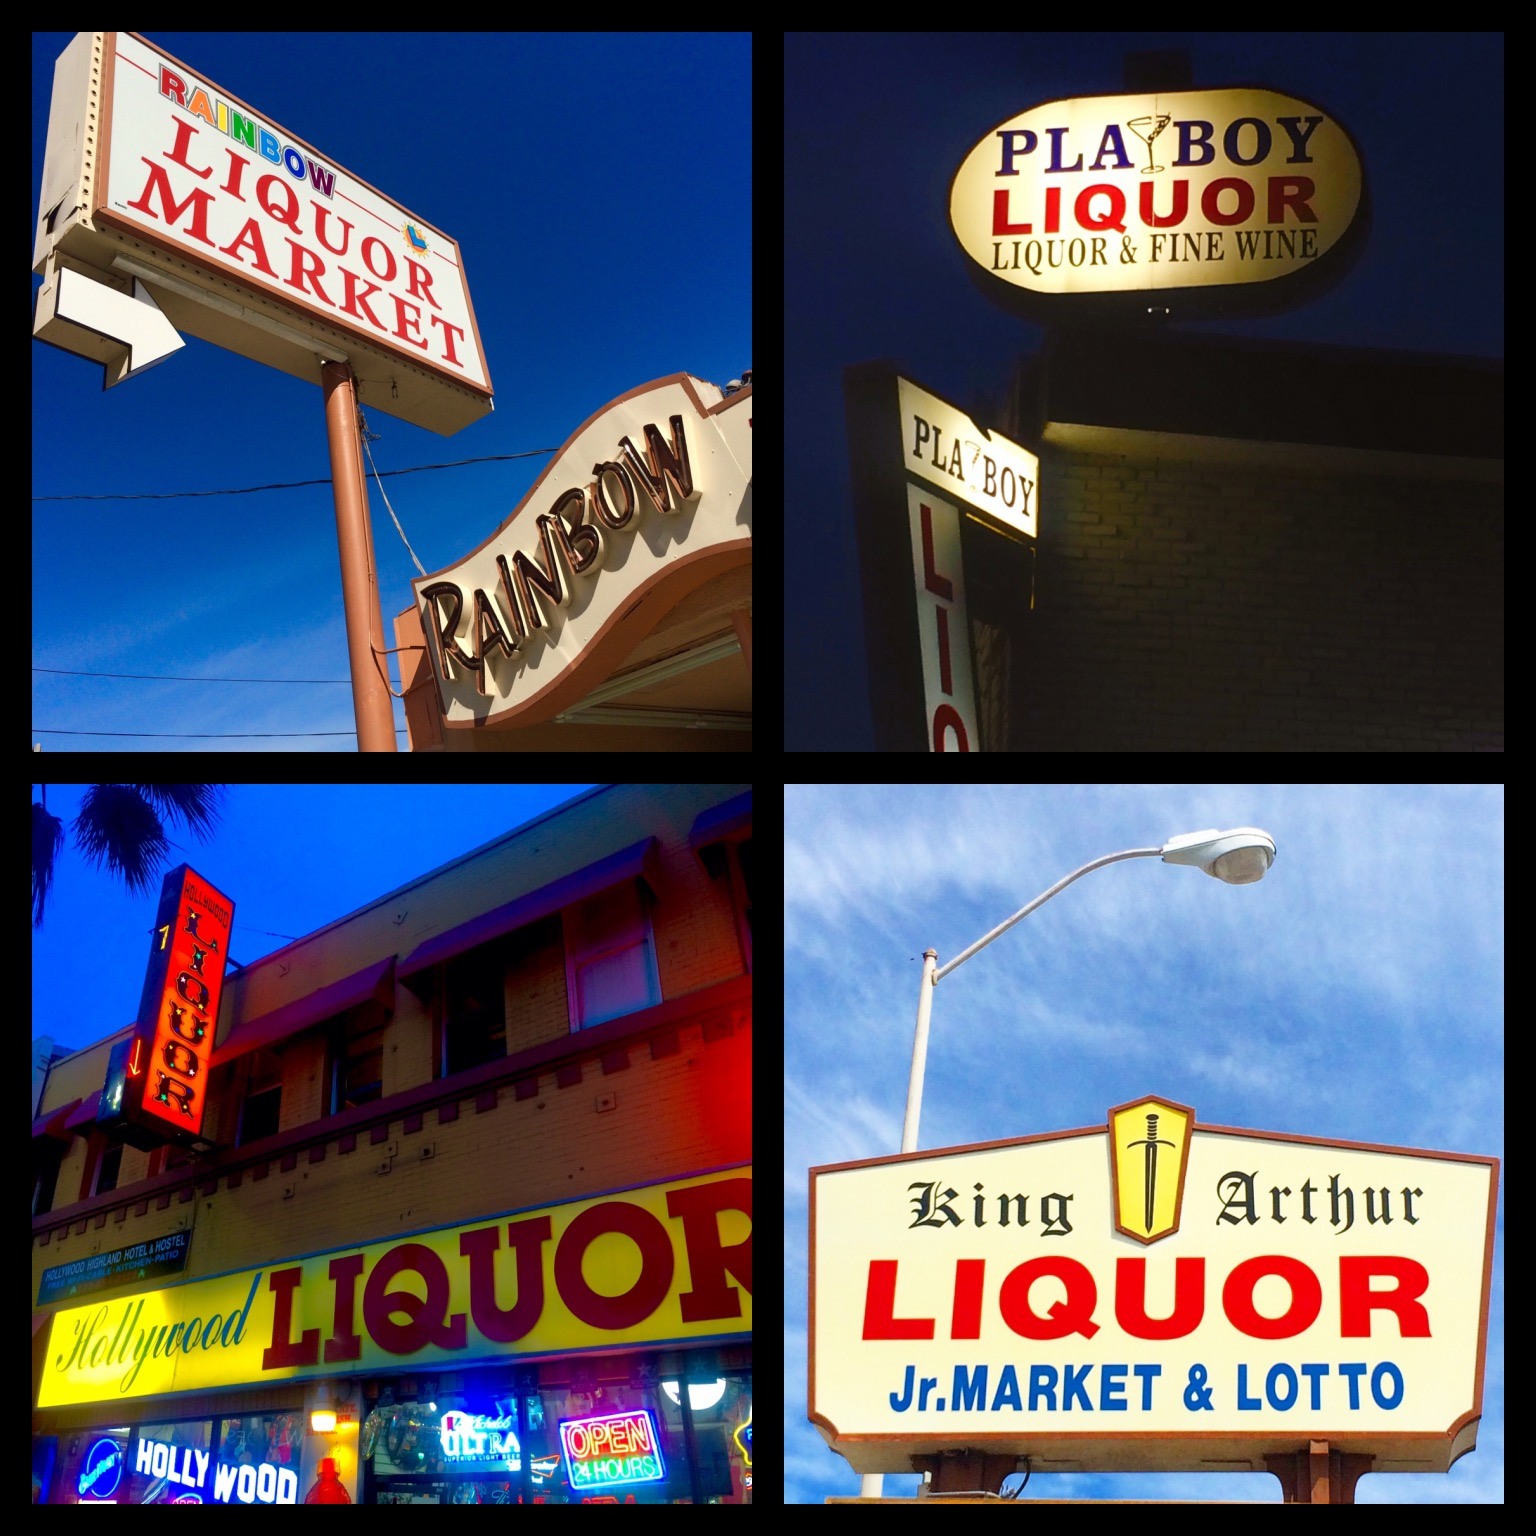 Going for big names... Rainbow Liquor on Saticoy Ave in Reseda; Pla-Boy Liquor on Yucca Street in Hollywood; Hollywood Liquors on Hollywood Blvd in Hollywood; King Arthur Liquor, opened in 1980 on Corbin Ave in Northridge